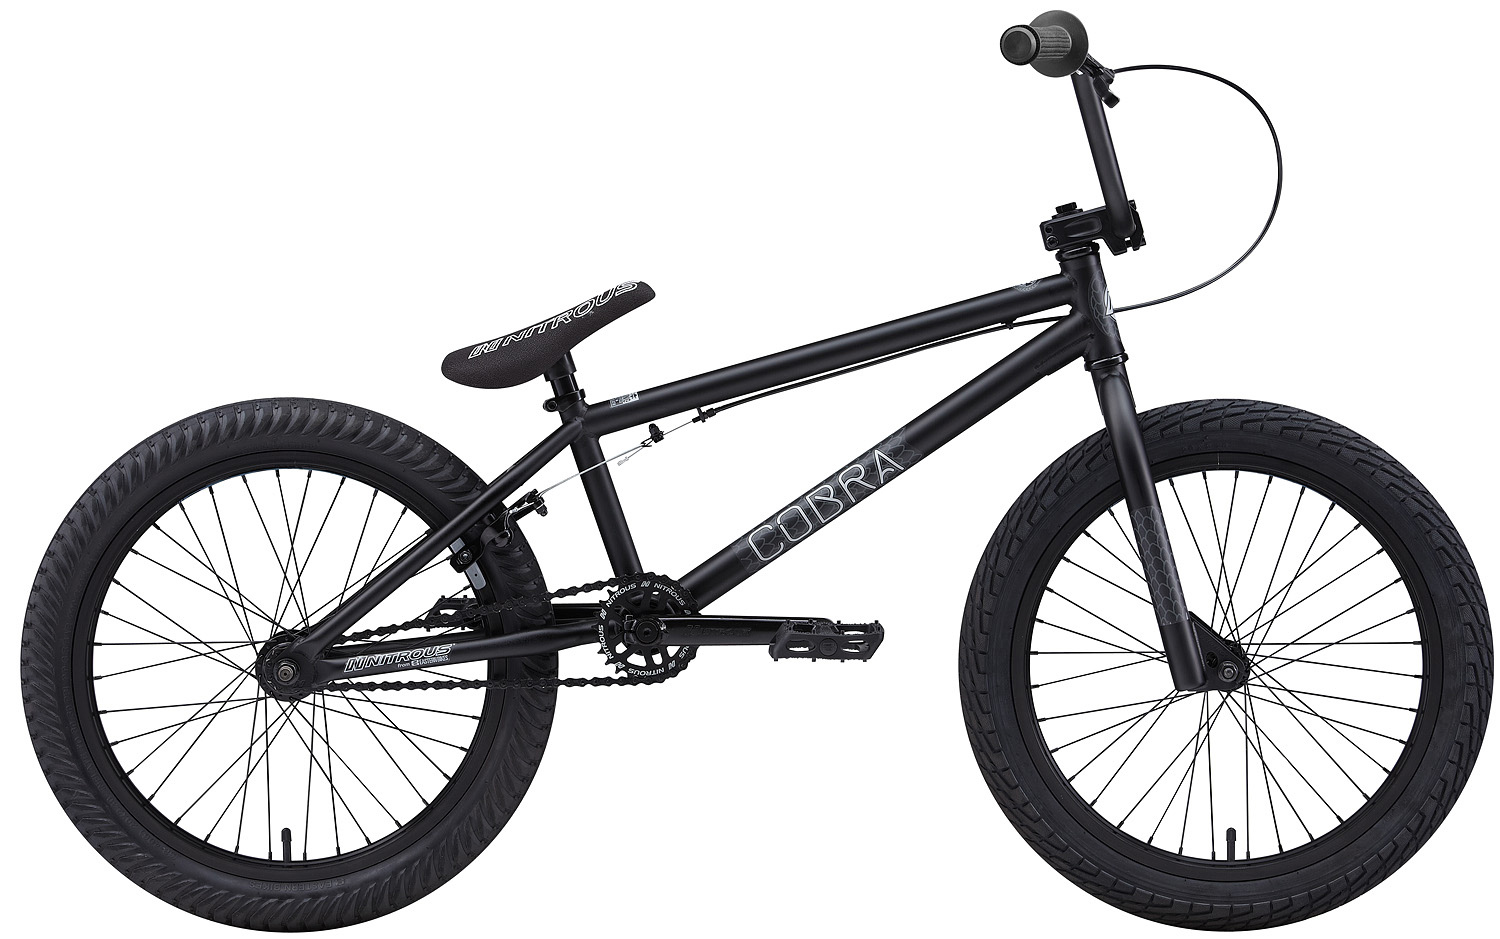 "BMX Key Features of the Eastern Cobra BMX Bike 20"": WEIGHT: 26.8 lbs. COLORS: Black/Black, Red/Black, Green/Black TOP TUBE SIZE: 20.25"" GEARING: 25/9 Micro-drive FRAME: Cobra Hi-Tensile Strength 1020 Steel Frame w/ lifetime upgrade policy** FORK: Cobra Hi-Tensile Strength 1020 Steel BARS: 8.0""x 28.5"" , 1 Degree Upsweep, 12 Degree Backsweep HEADSET: 1-1/8"" Aheadset BB: American Loose Ball Bearing PEDALS: Eastern Crown pedals GRIPS: Eastern Wiz Signature Grip STEM: Forged Alloy Front Load SPROCKET: 25T Steel w/ Nitrous Graphic CRANKS: Nitrous Shifter 175mm tubular chromoly heat-treated 3pc. cranks w/ 8 spline spindle SEAT: Nitrous Logo 1-Piece Seat/Alloy Post Combo TIRES: LHR Multi-Surface , 20"" x 2.20"" FRONT HUB: 36H 3/8"" Loose Ball Bearing REAR HUB: KT/Quando semi-sealed 36H cassette hub. 1-piece 9-tooth chromoly driver, hollow 14mm chromoly axle RIMS: Alloy 36 Hole REAR BRAKES: Forged Alloy U-Brake / Straight Cable / Forged Alloy lever, Designed for U-Brakes FREEWHEEL: 9T 1-Piece Chromoly Driver CHAIN: KMC Z510 SEAT CLAMP: Nitrous Locker Forged Alloy Clamp FRONT WHEEL: Hub Flange Diameter: 44.5mm, Rim E.R.D: 398, Spoke Length: 187mm REAR WHEEL: Hub Flange Diameter: 66.7mm, Rim E.R.D: 398, Spoke Length: 184mm - $299.95"